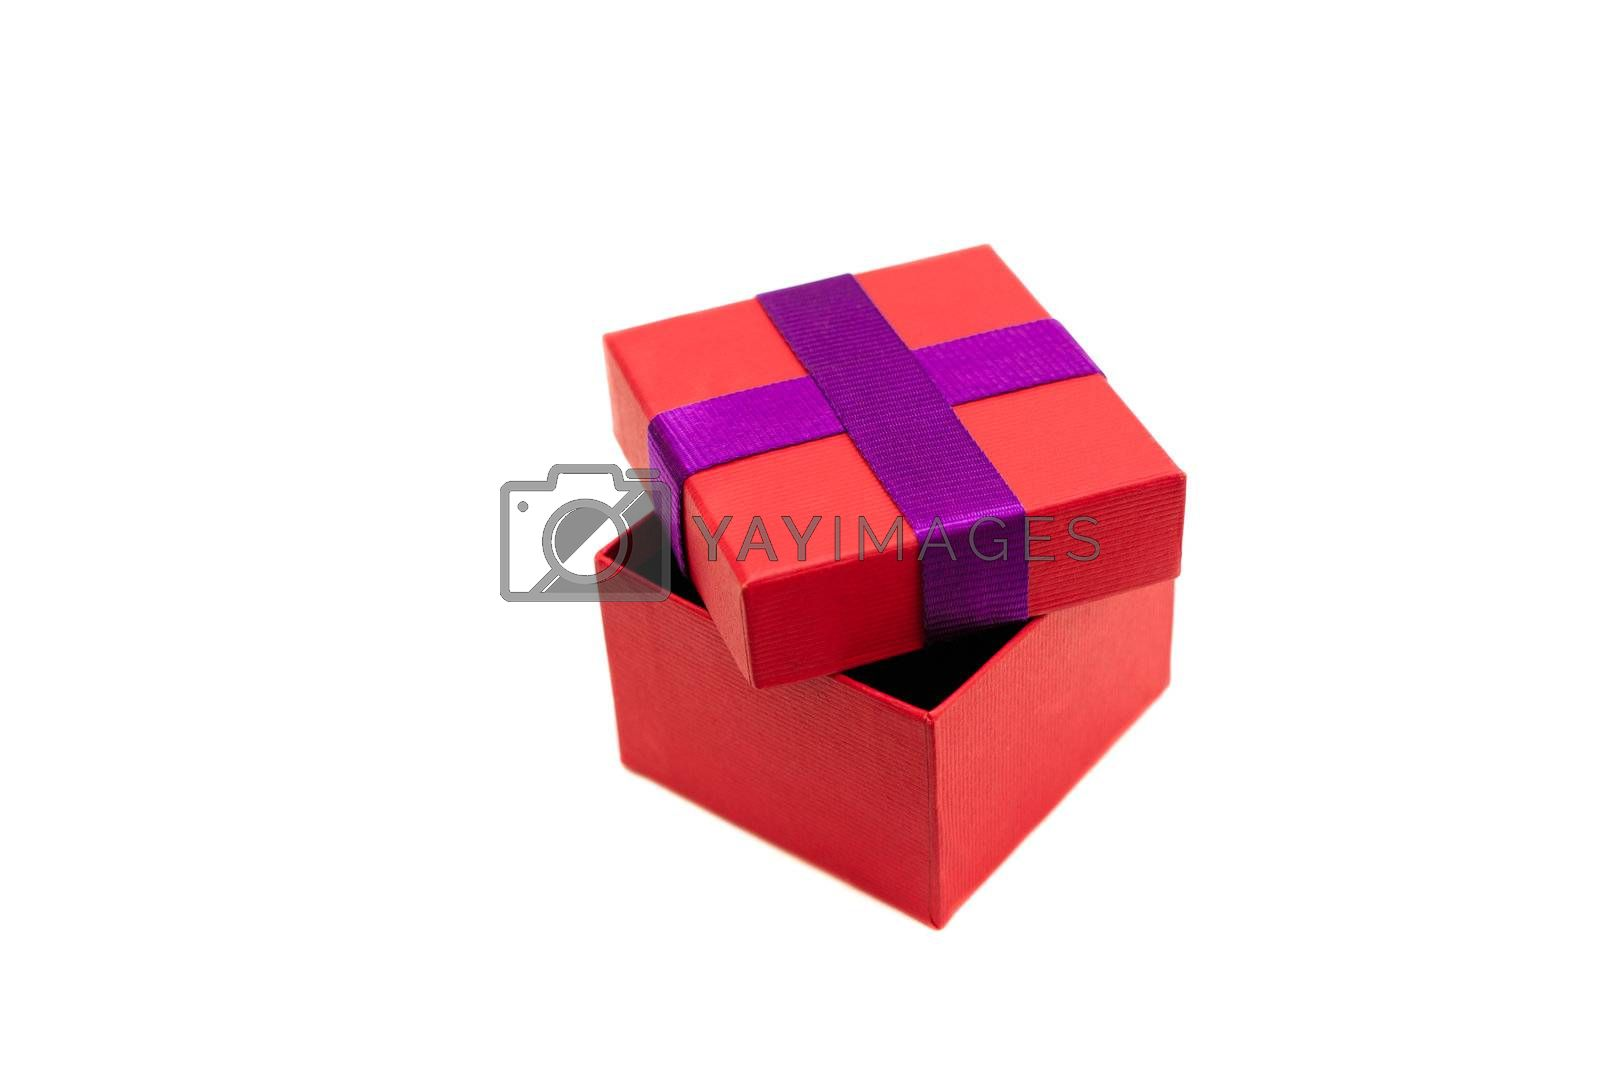 Isolated red purple opened present box